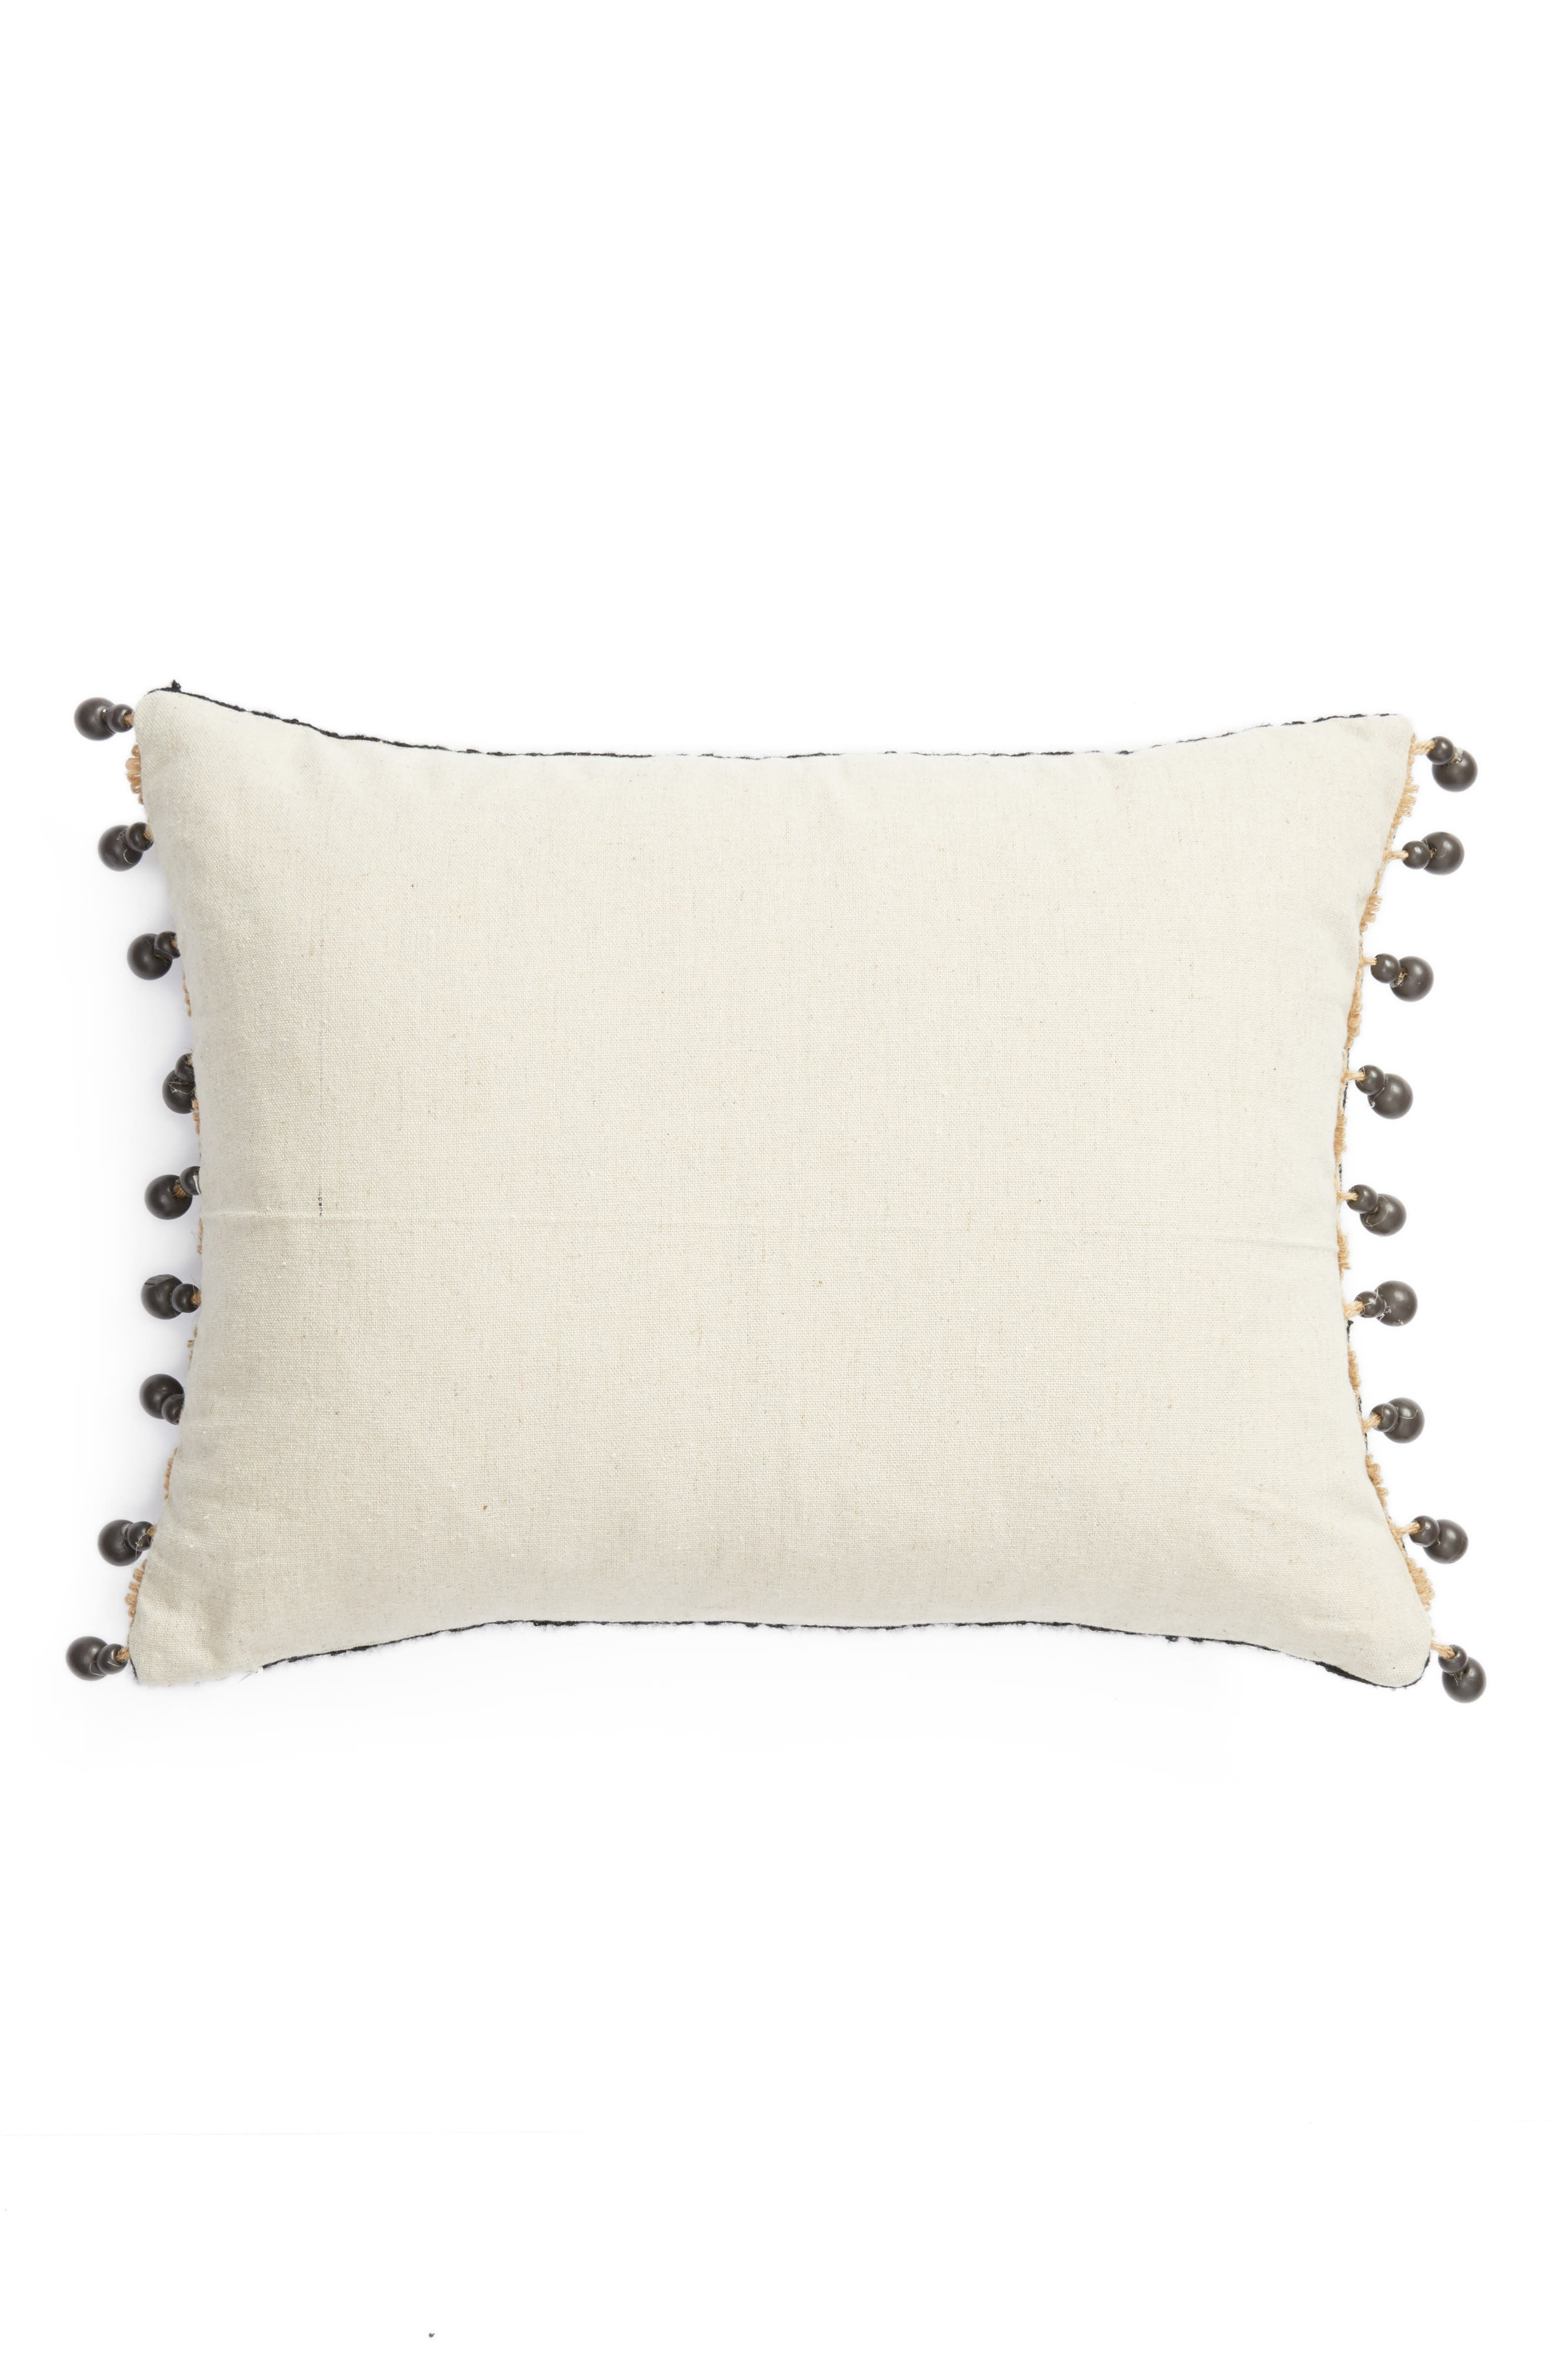 Moroccan Crewel Embroidered Pillow,                             Alternate thumbnail 2, color,                             010